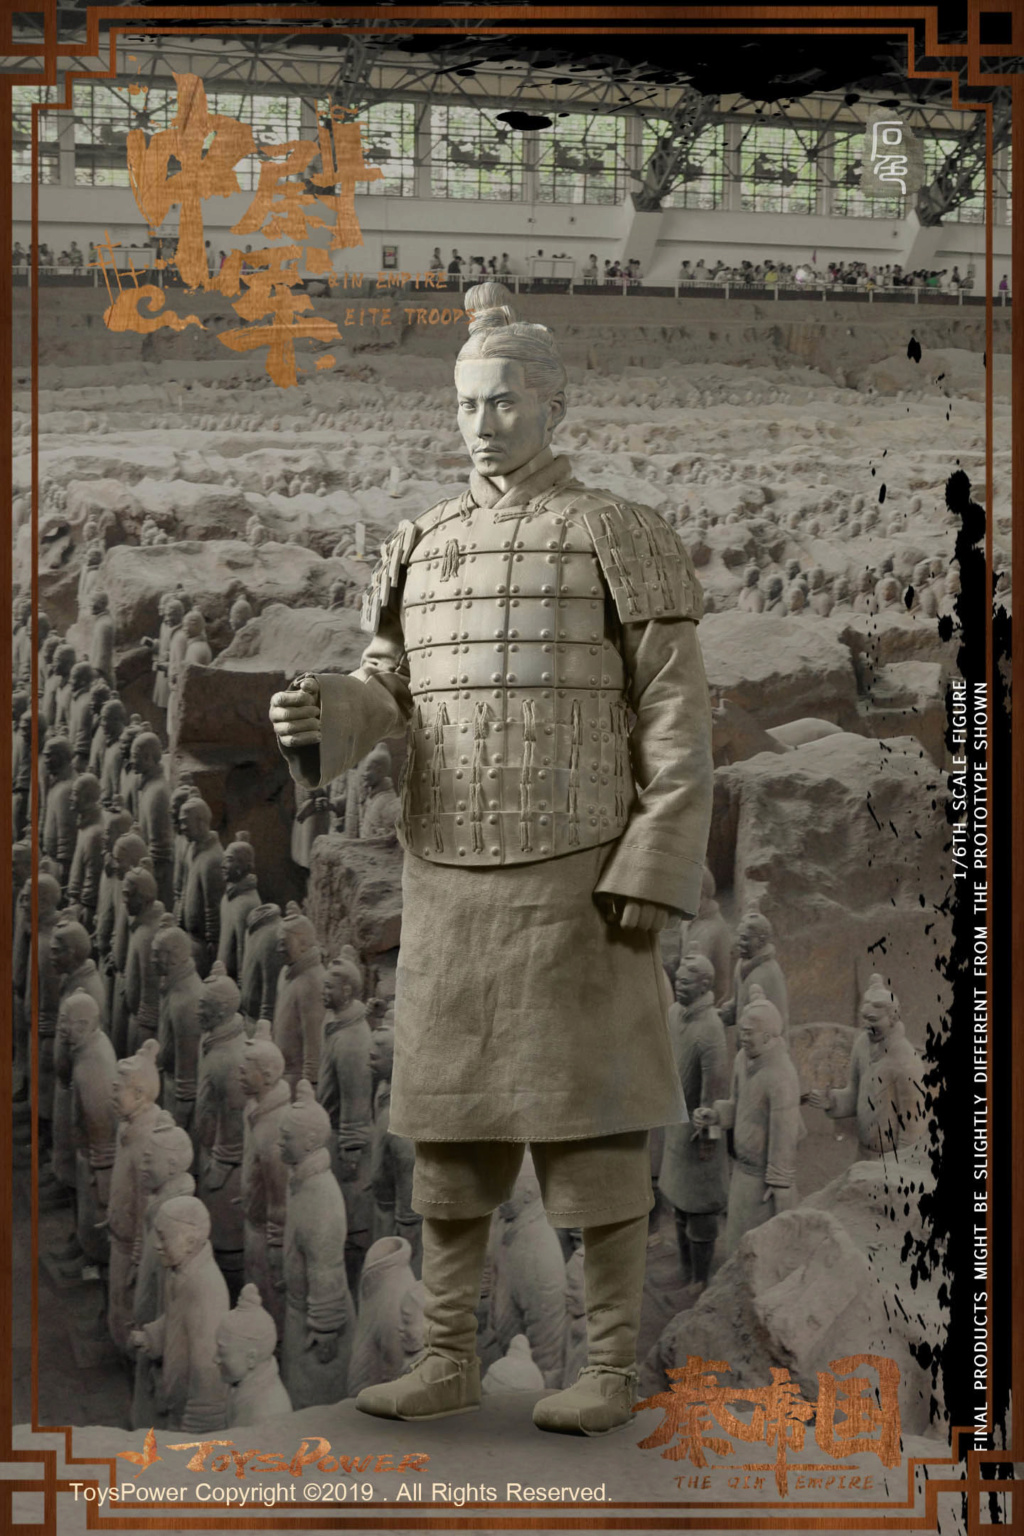 Army - NEW PRODUCT: Toyspower: 1/6 Qin Empire Lieutenant Army (Terracotta Warriors) movable doll CT012# (update armor piece drawing) 17412410